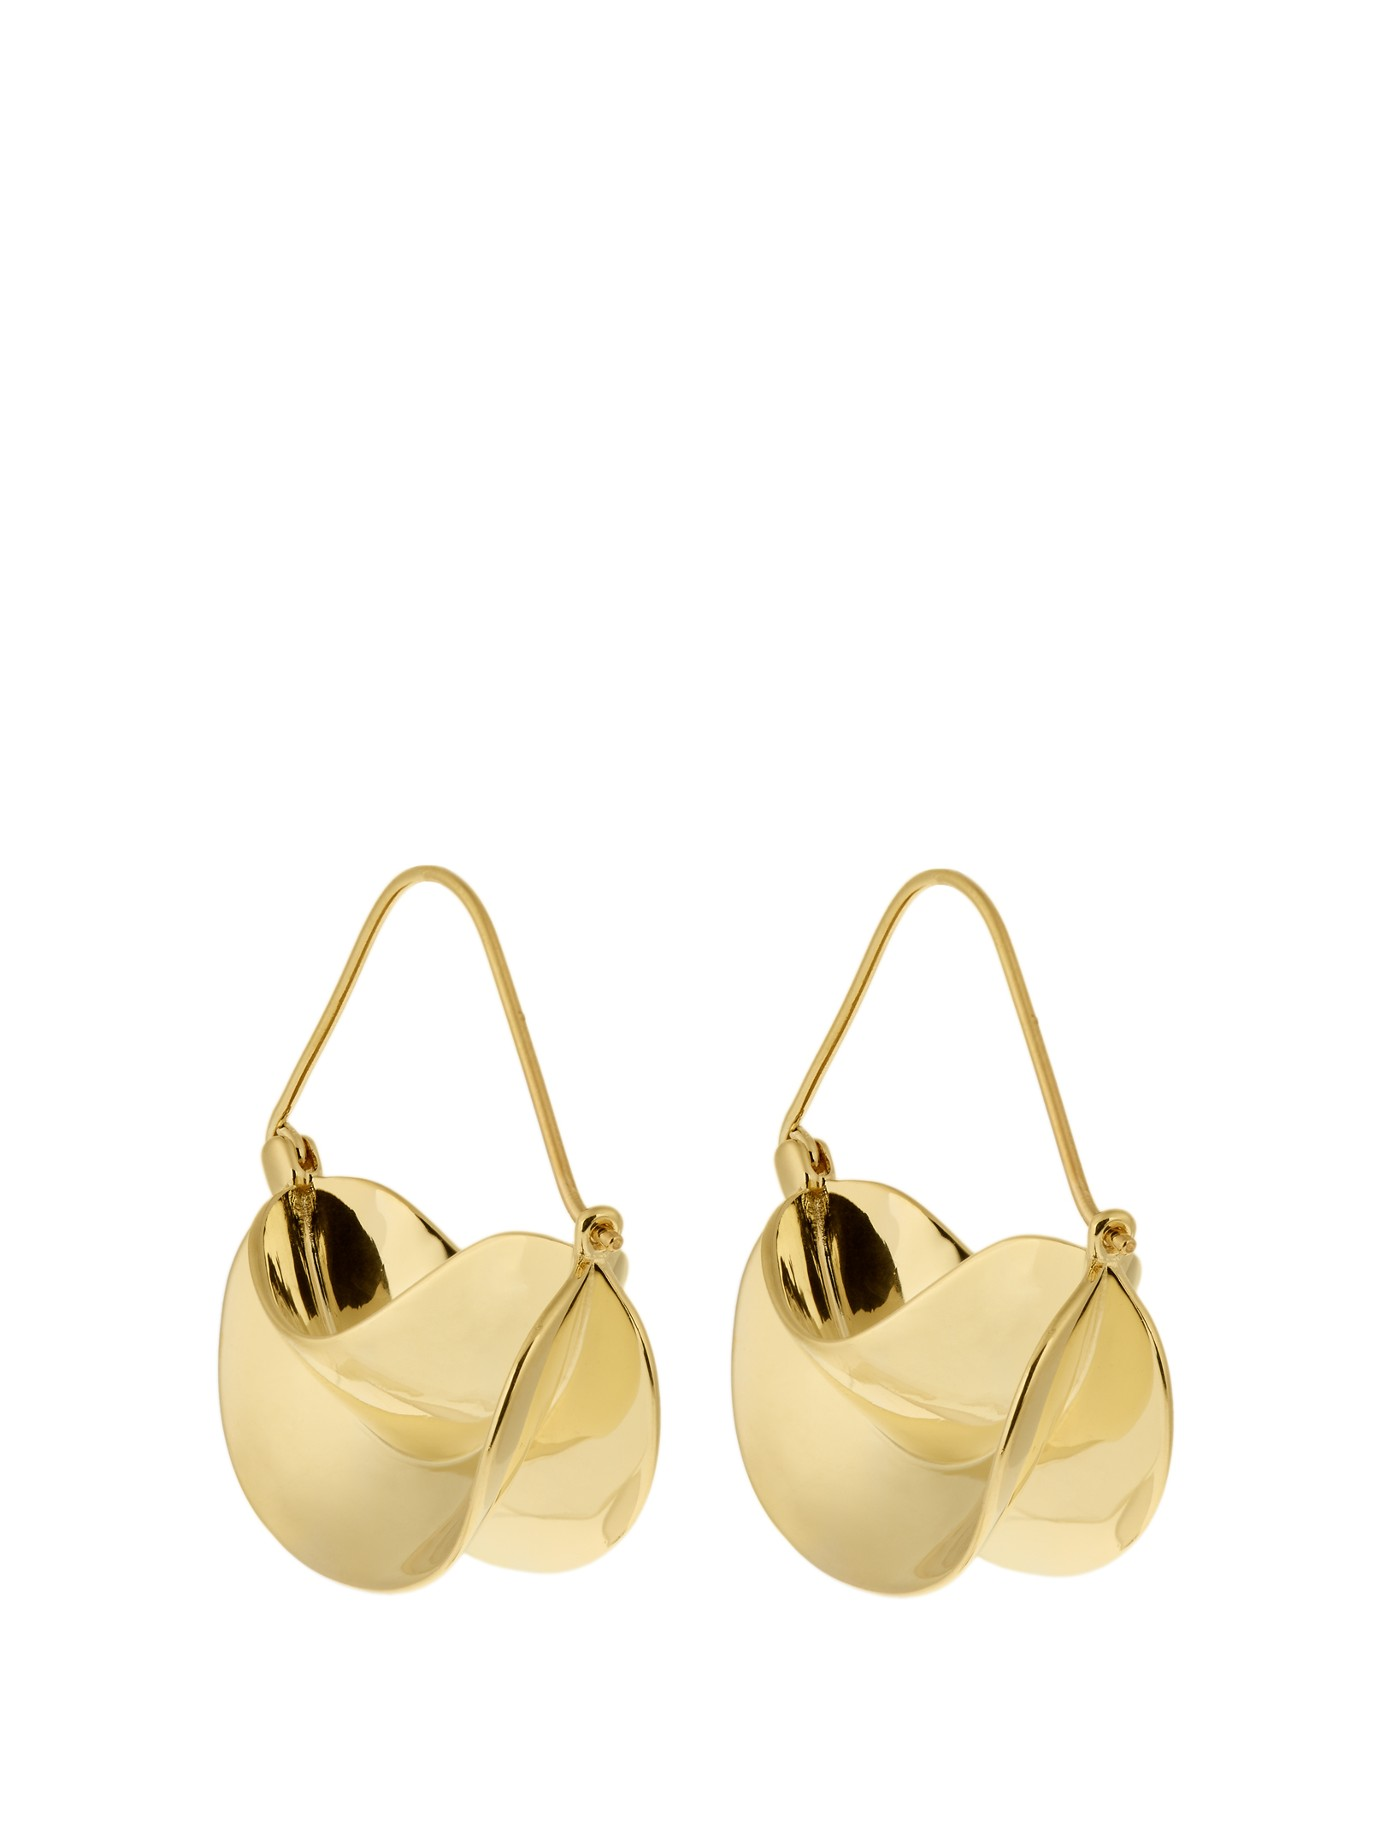 Anissa Kermiche 'Gold-Plated Earrings'